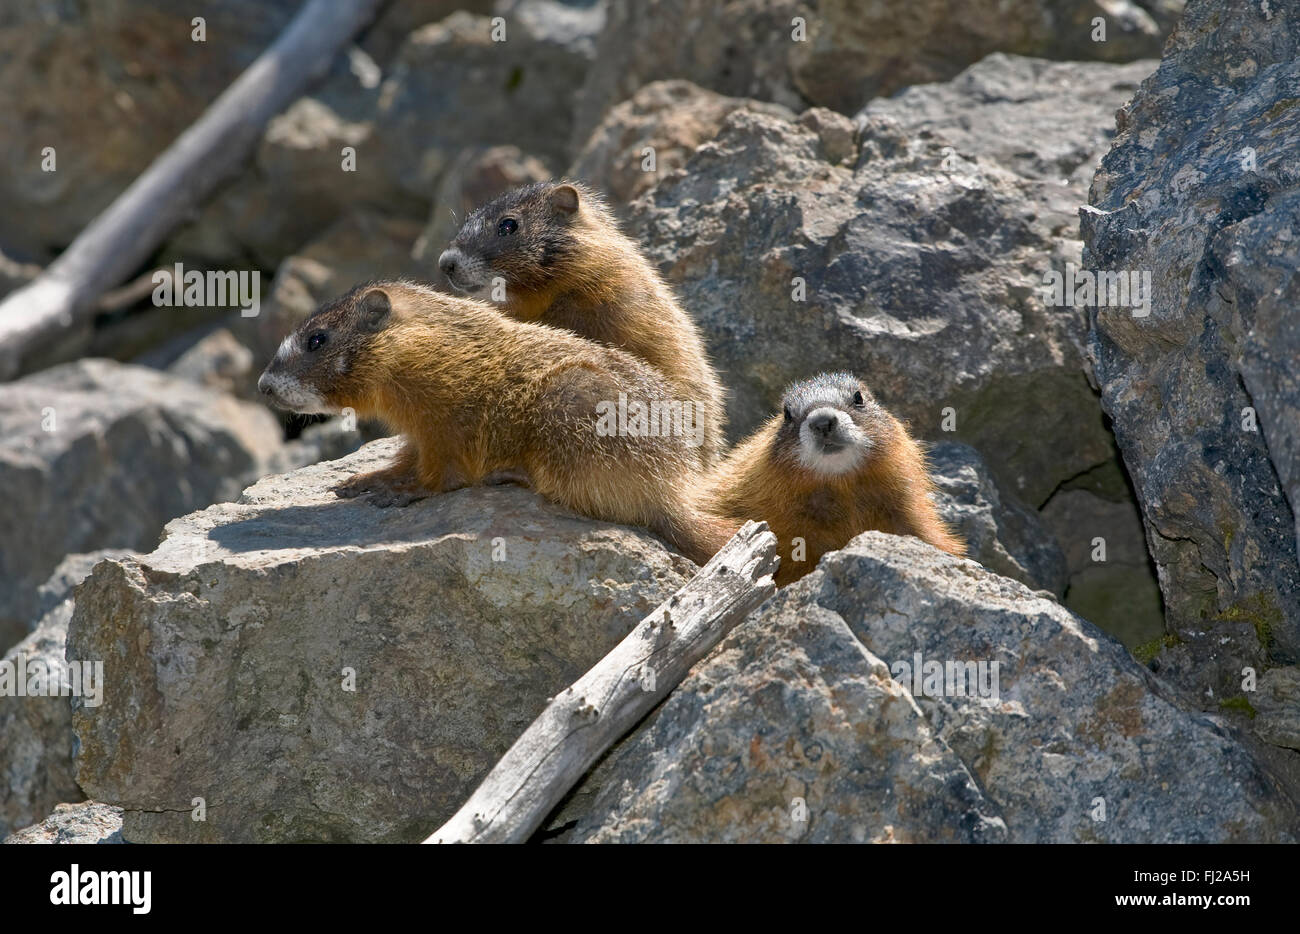 YELLOW BELLIED MARMOT (Marmota flaviventris) YOUNG amongst the rocks  - YELLOWSTONE NATIONAL PARK, WYOMING - Stock Image